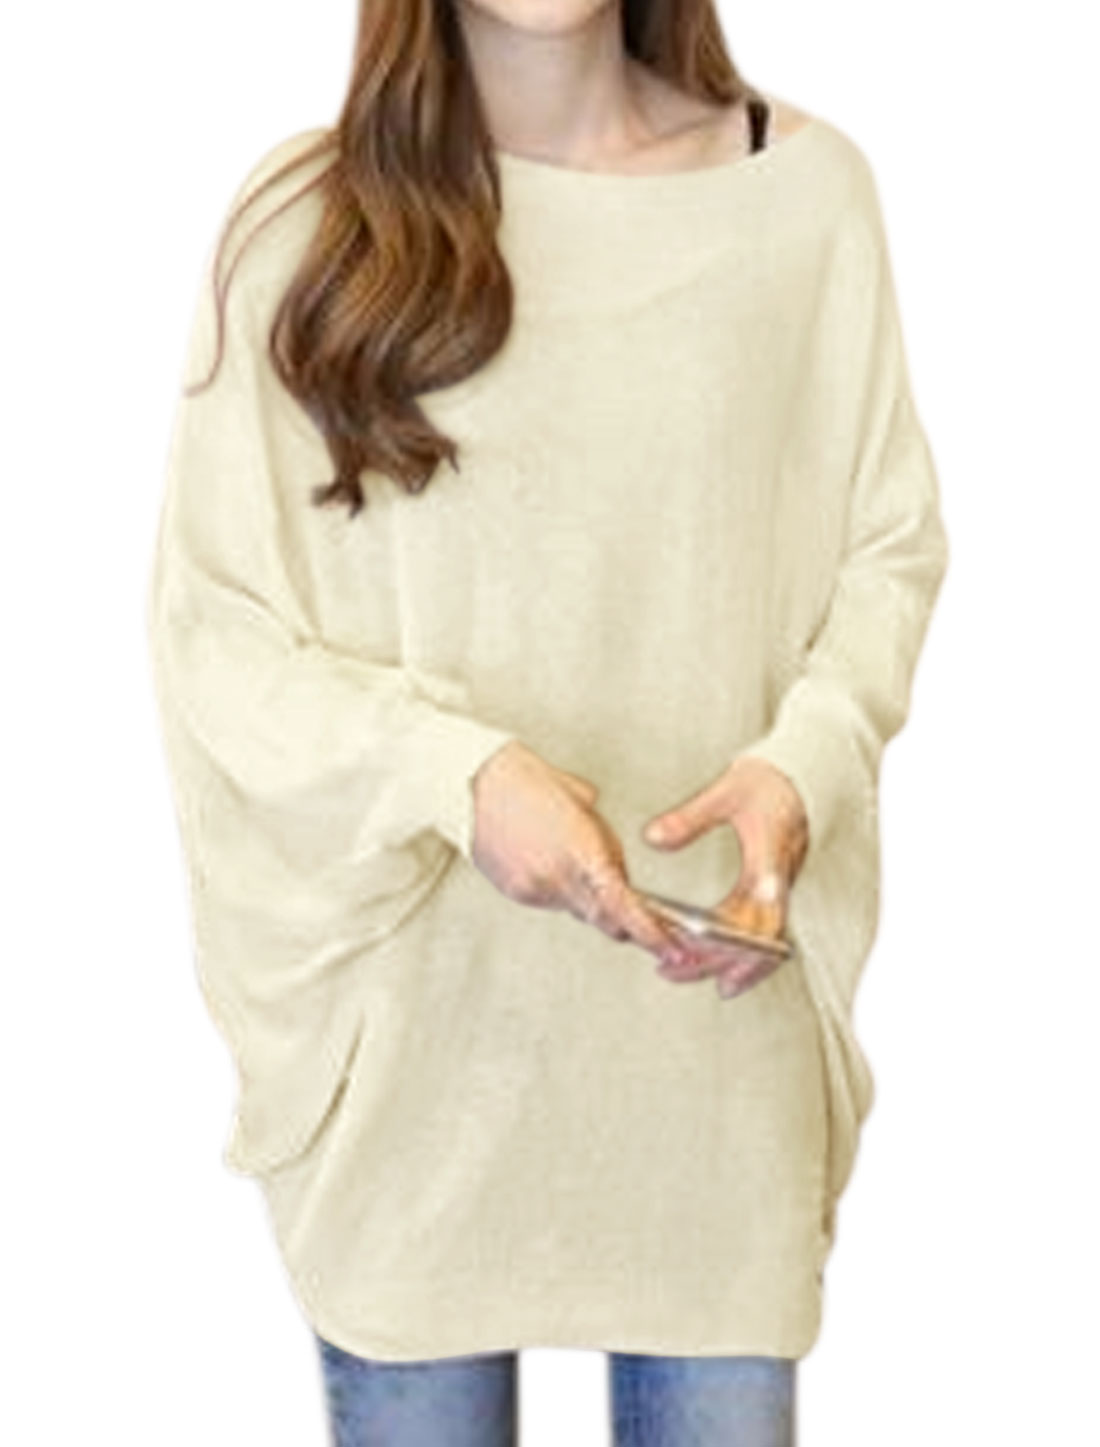 Women Boat Neck Batwing Sleeves Knit Loose Tunic Blouse White XS